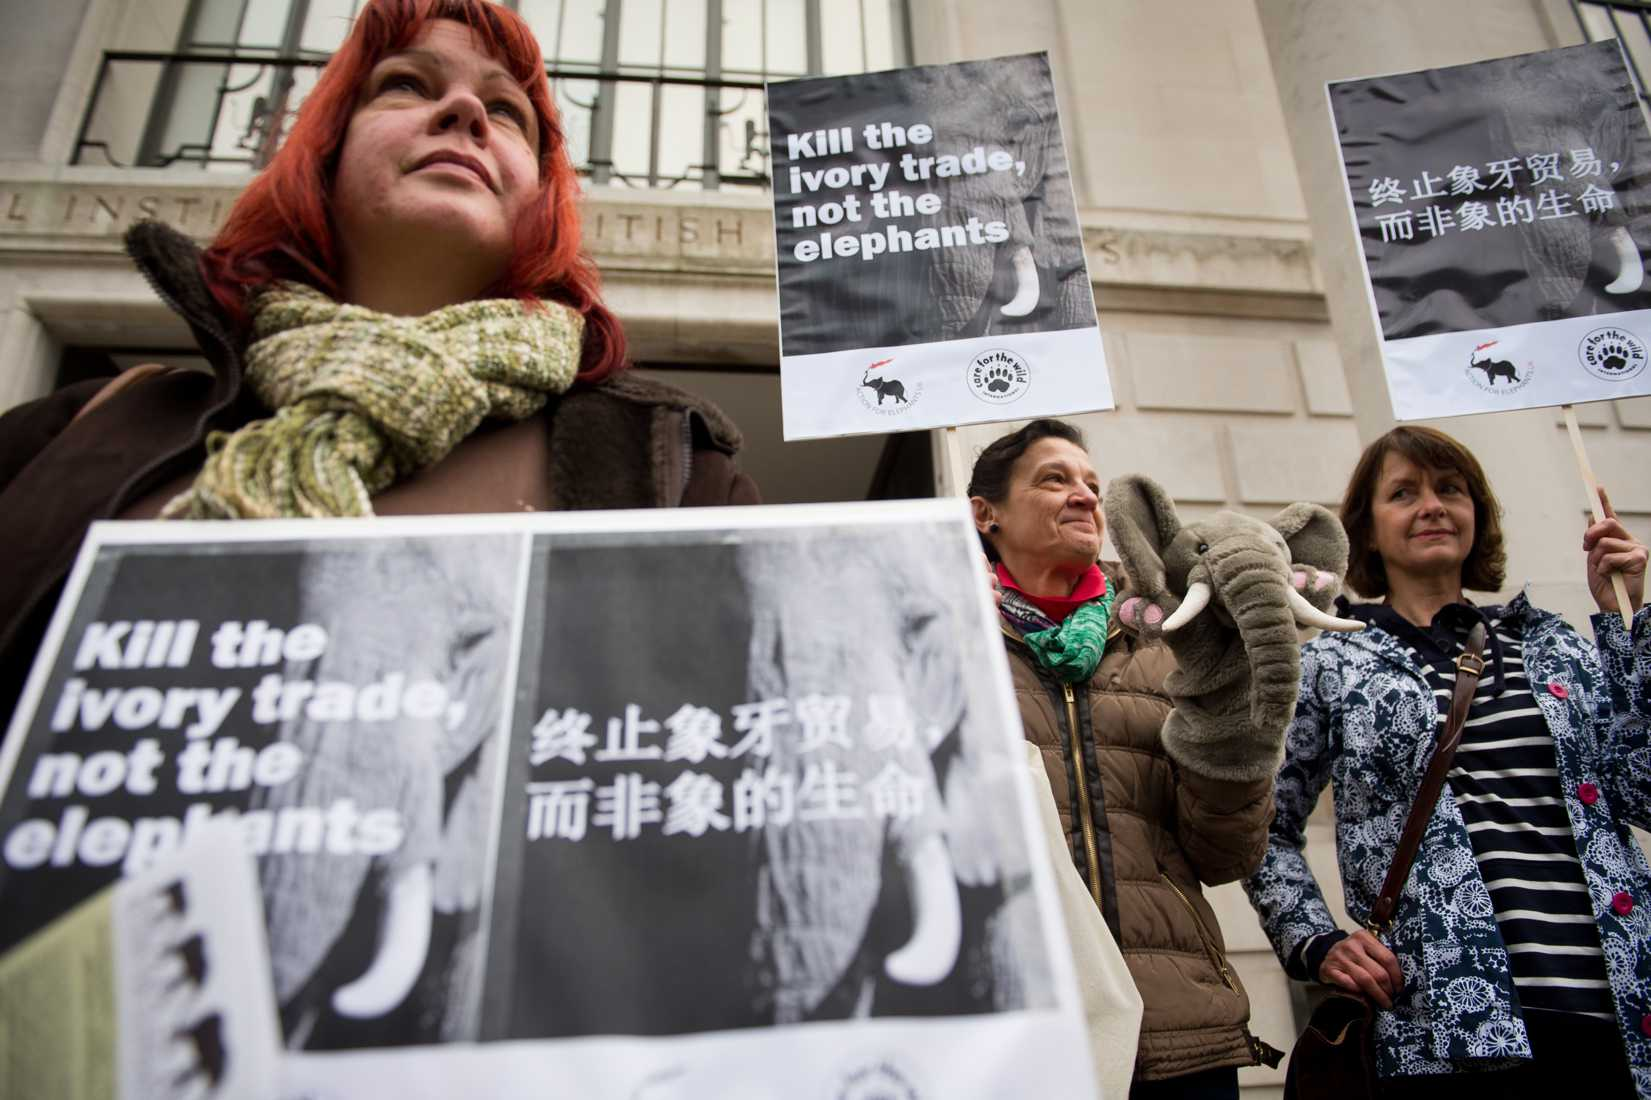 A protester with a banner displaying Chinese characters joins a demonstration outside the Chinese embassy in London, on Jan. 25, 2014, to call for an end to the ivory trade in China.